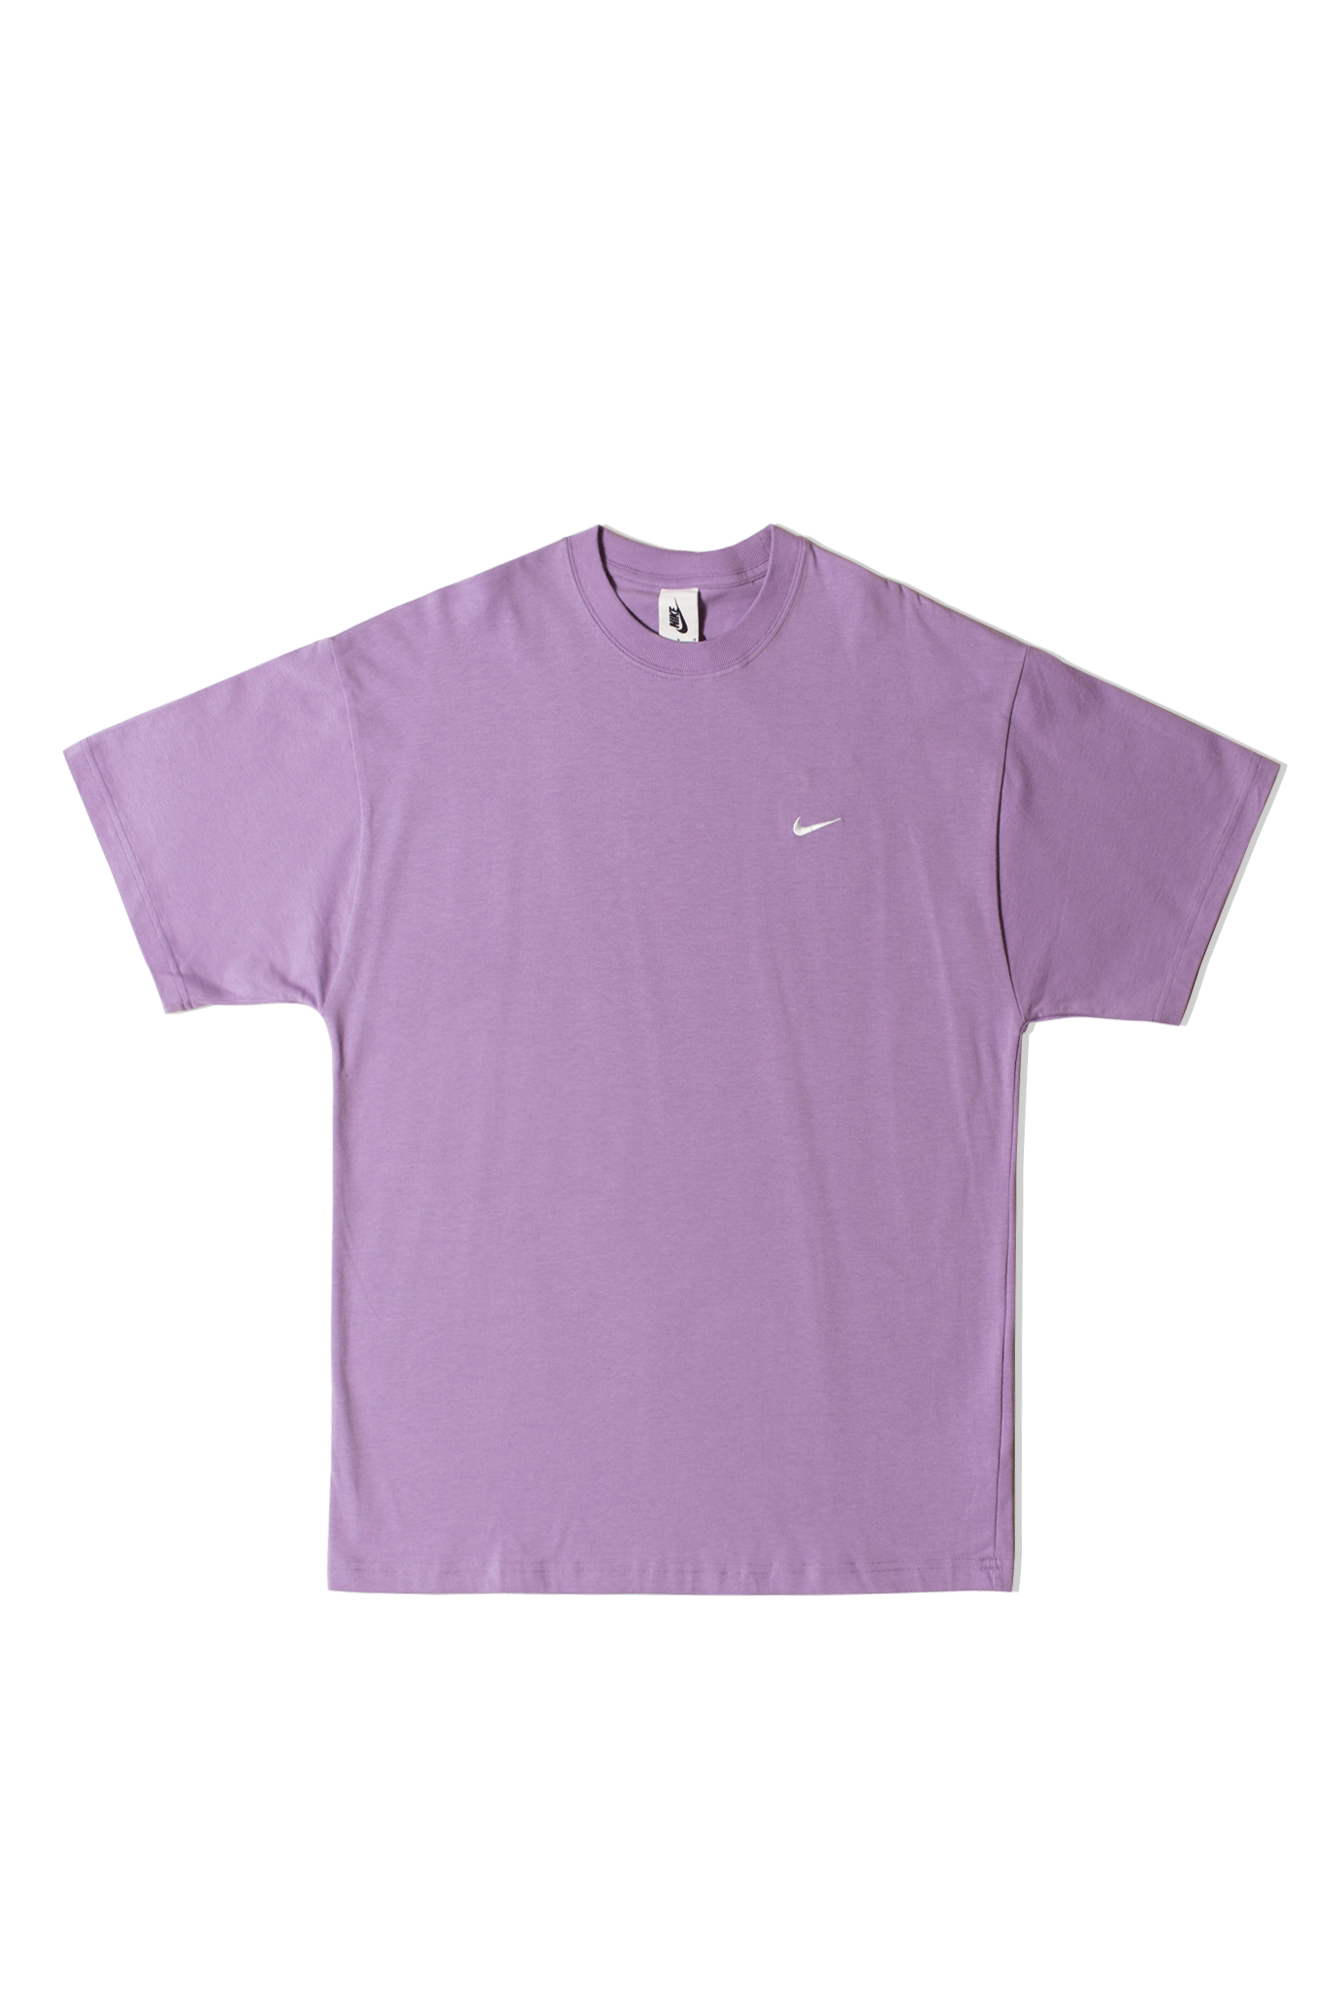 M NRG SlowSwoosh T-Shirt Viola